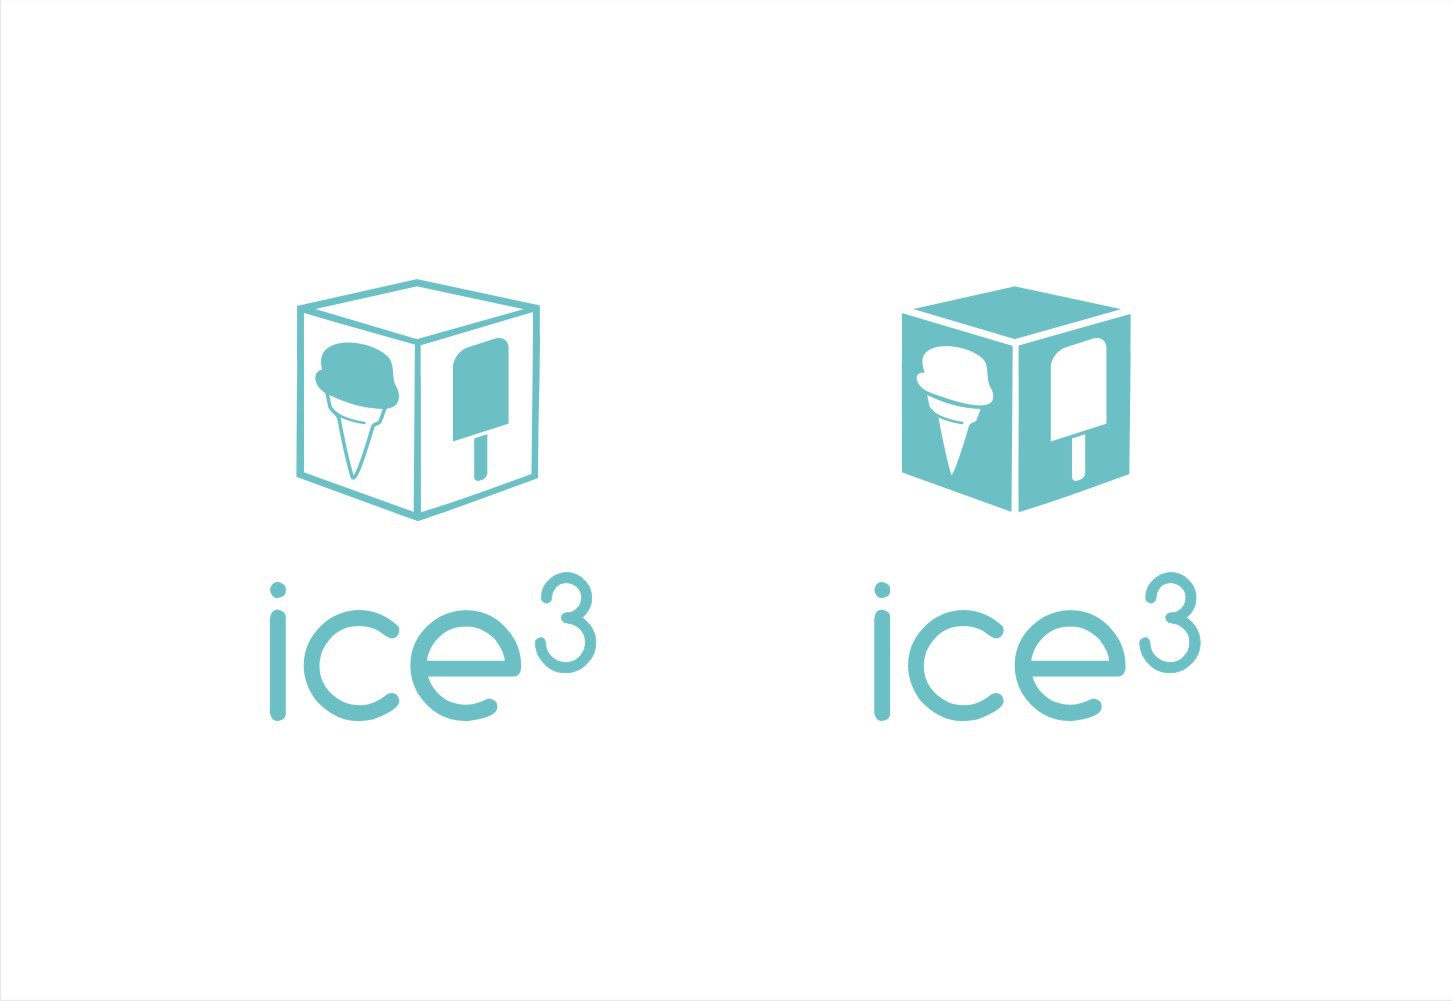 New logo wanted for Ice3! Let's see what you can do!